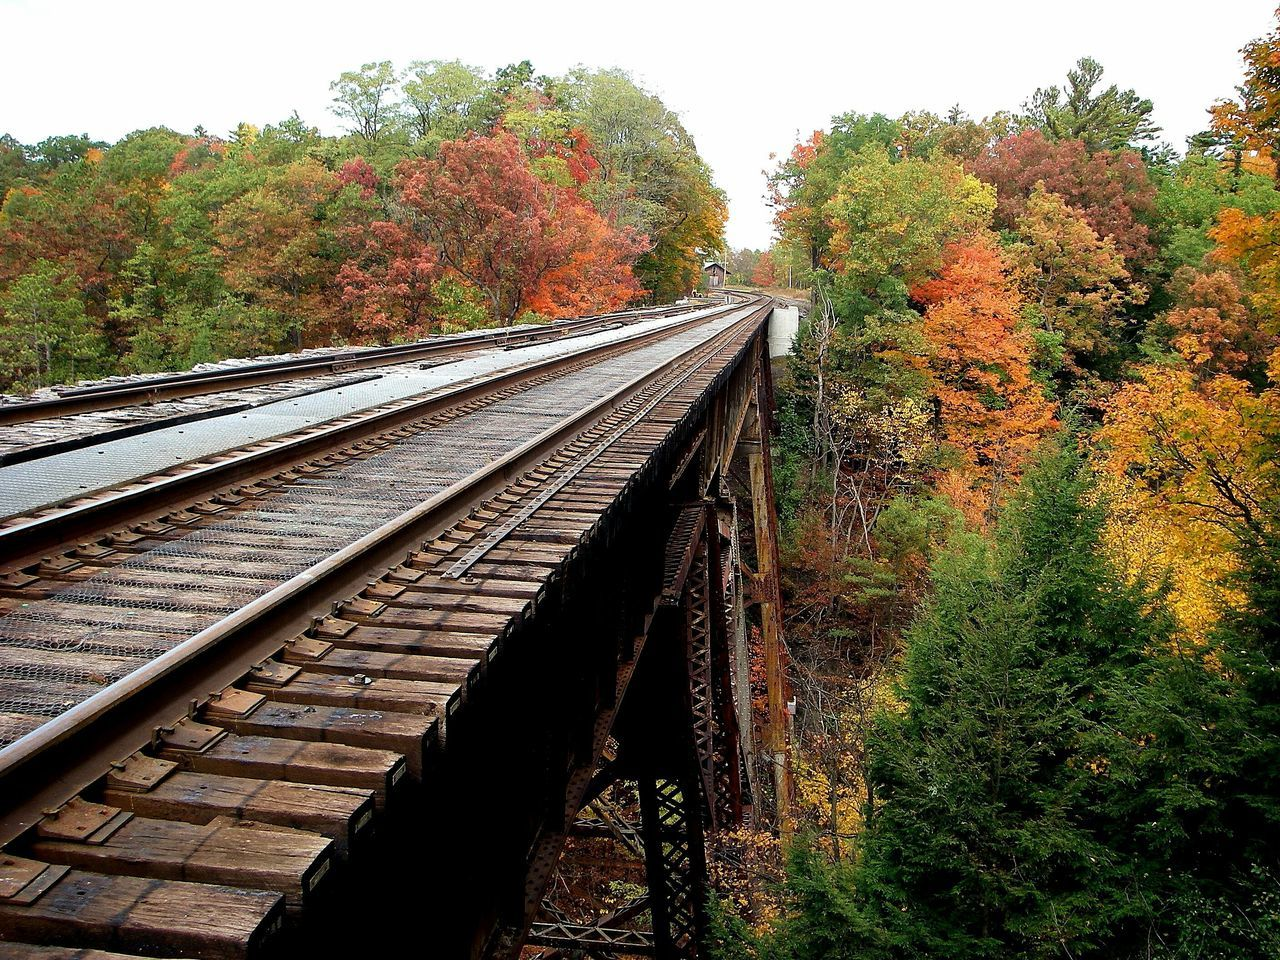 tree, autumn, change, transportation, railroad track, rail transportation, no people, nature, leaf, day, outdoors, growth, scenics, beauty in nature, sky